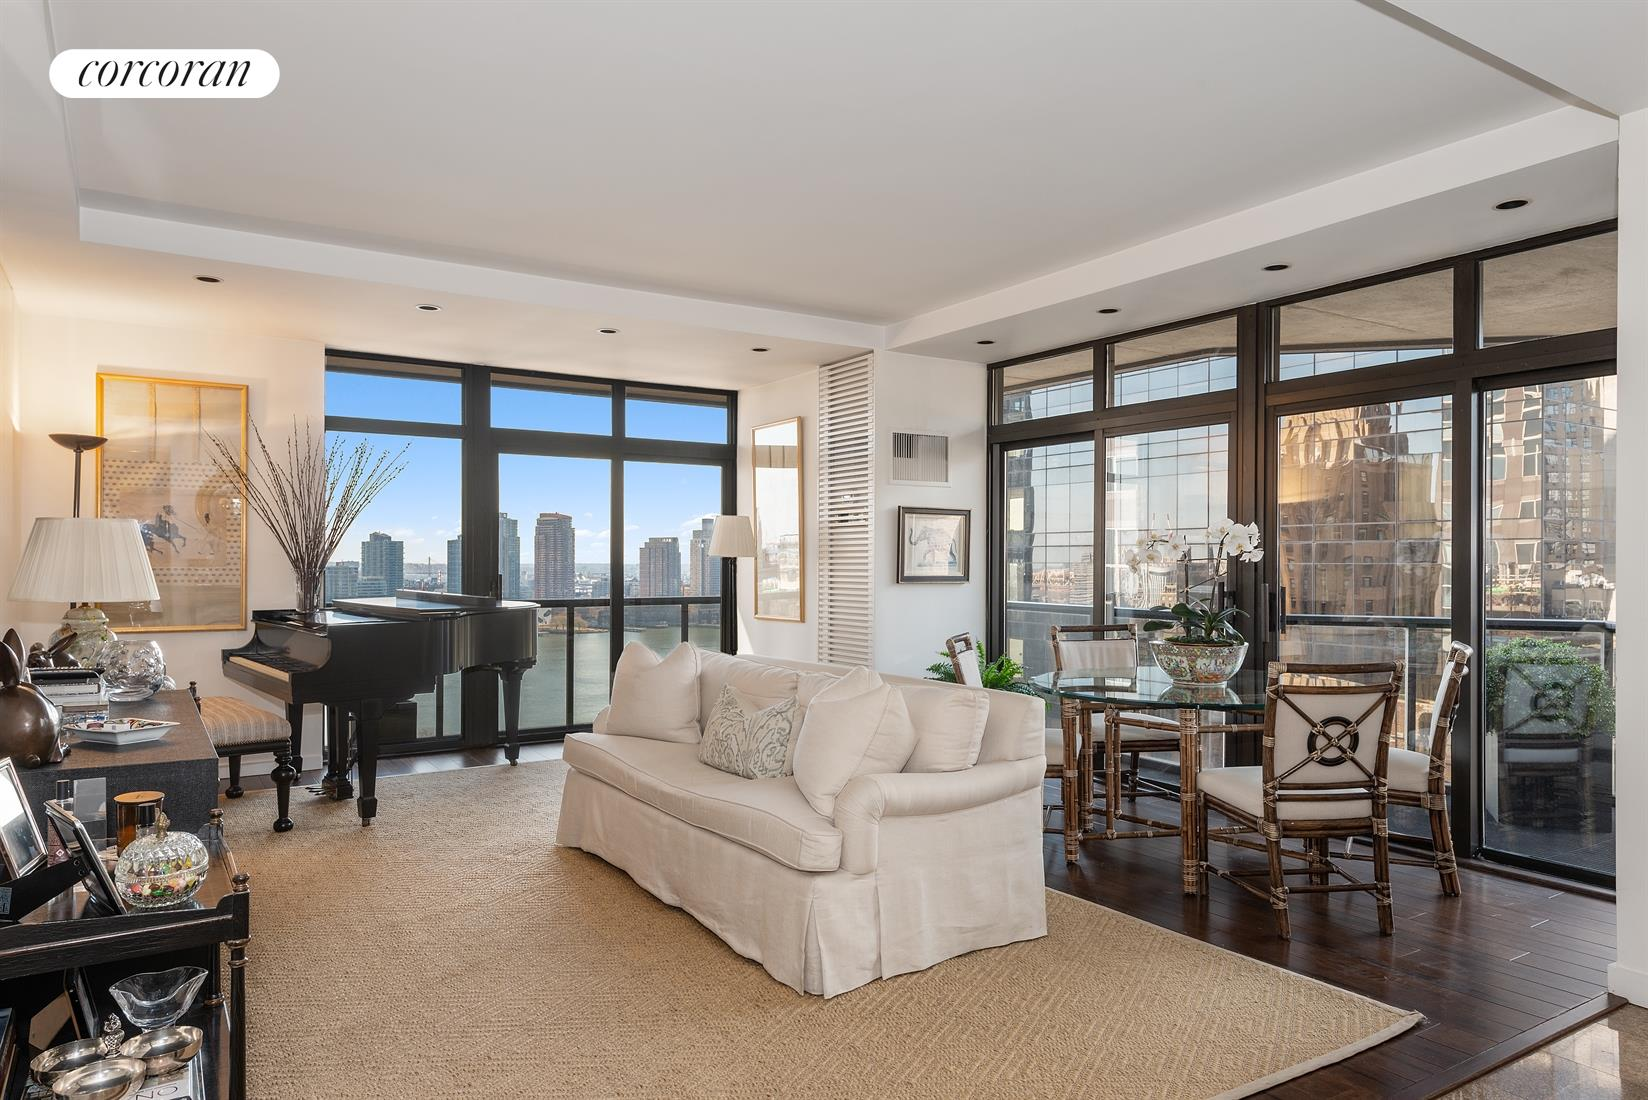 Enjoy spectacular East River and southern skyline views from this renovated, 23rd floor 2 bedroom, 2.5 bathroom with wrap balcony now offered for sale at 100 United Nations Plaza.Offering a split bedroom layout and 1,324 square feet of interior living space, apartment 23B boasts a renovated kitchen and powder room, hardwood and marble flooring, recessed lighting and a 154 square foot private wrap-around balcony. Pass through the inviting foyer into the sunlit corner living and dining room to take in the beautiful backdrop of city and river views from its floor-to-ceiling windows and private wrap balcony. Spacious enough for separate living and dining areas, there is also a built-in dry bar for easy entertaining. The adjacent windowed kitchen has been completely renovated and features crisp white cabinetry, Caesarstone countertops, modern tonal tile backsplash and full size stainless steel appliances including a Wolf range and Sub Zero refrigerator. The generous master suite is the perfect retreat for the end of a long day. Comfortably accommodating a king size bed along with additional furnishings, it offers two closets (one is a walk in closet) and an en suite marble bathroom with an extra-large vanity and soaking bathtub with sliding glass doors. Pin-drop quiet, the second bedroom has with an eastern exposure along with its own en suite marble bathroom. In addition, this fantastic unit has central heat and A/C and a renovated powder room with a pedestal sink and marble accent tile. Located on East 48th Street and First Avenue, 100 United Nations Plaza is a white-glove, full service condominium in Manhattan's Turtle Bay neighborhood. Greeting residents with beautifully landscaped gardens and waterfalls, this impeccably run building offers a 24-hour doorman, valet and concierge service, on-site management office, renovated lobby and resident's lounge, common laundry room, fitness center and direct access to a 24-hour attended parking garage. Conveniently located to 